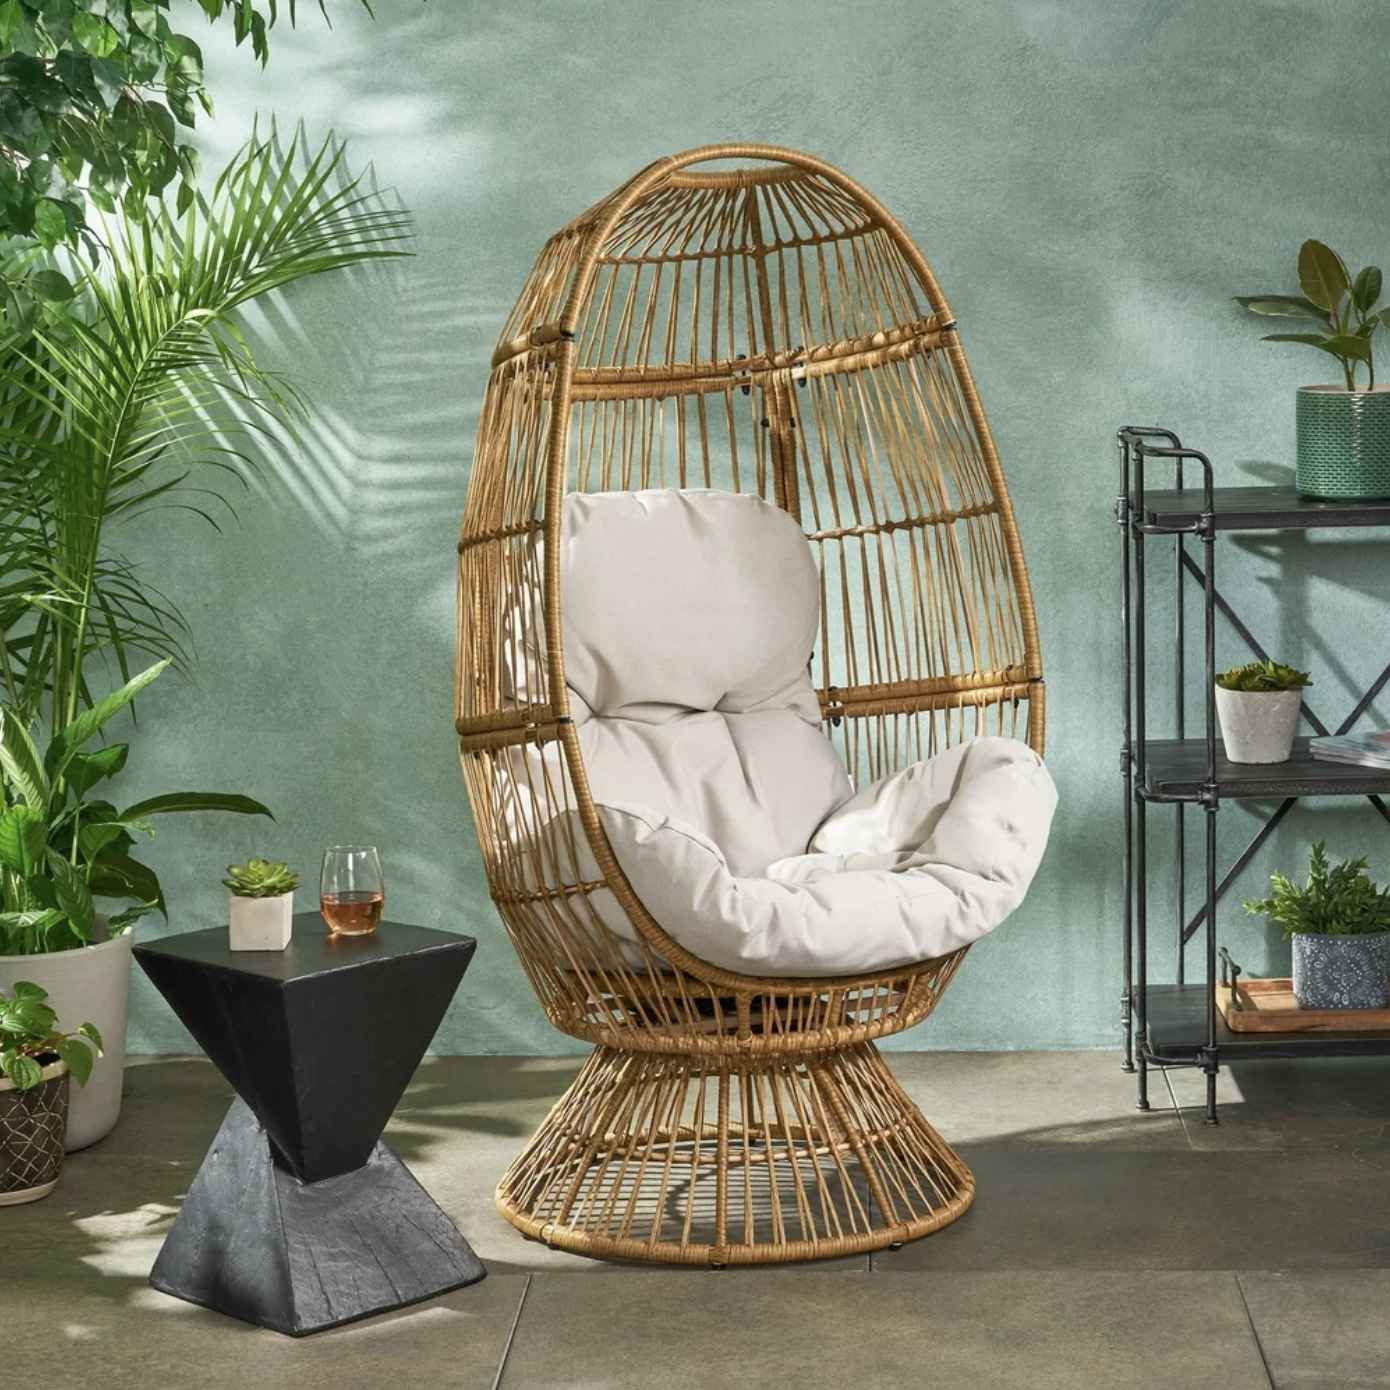 Target Southport Patio Egg Chair,Target Southport Patio Egg Chair dupes, affordable dupes for theTarget Southport Patio Egg Chair, egg chair inspiration, egg chair home ideas, egg chairs, wicker egg chairs, hanging egg chairs,interior, home decor, home interior, interior styling, target dupes, patiofurniture, patio furnitureinspiration,Jennifer Worman, Red Soles and Red Wine, Pintan Outdoor Wicker Swivel Egg Chair Overstock